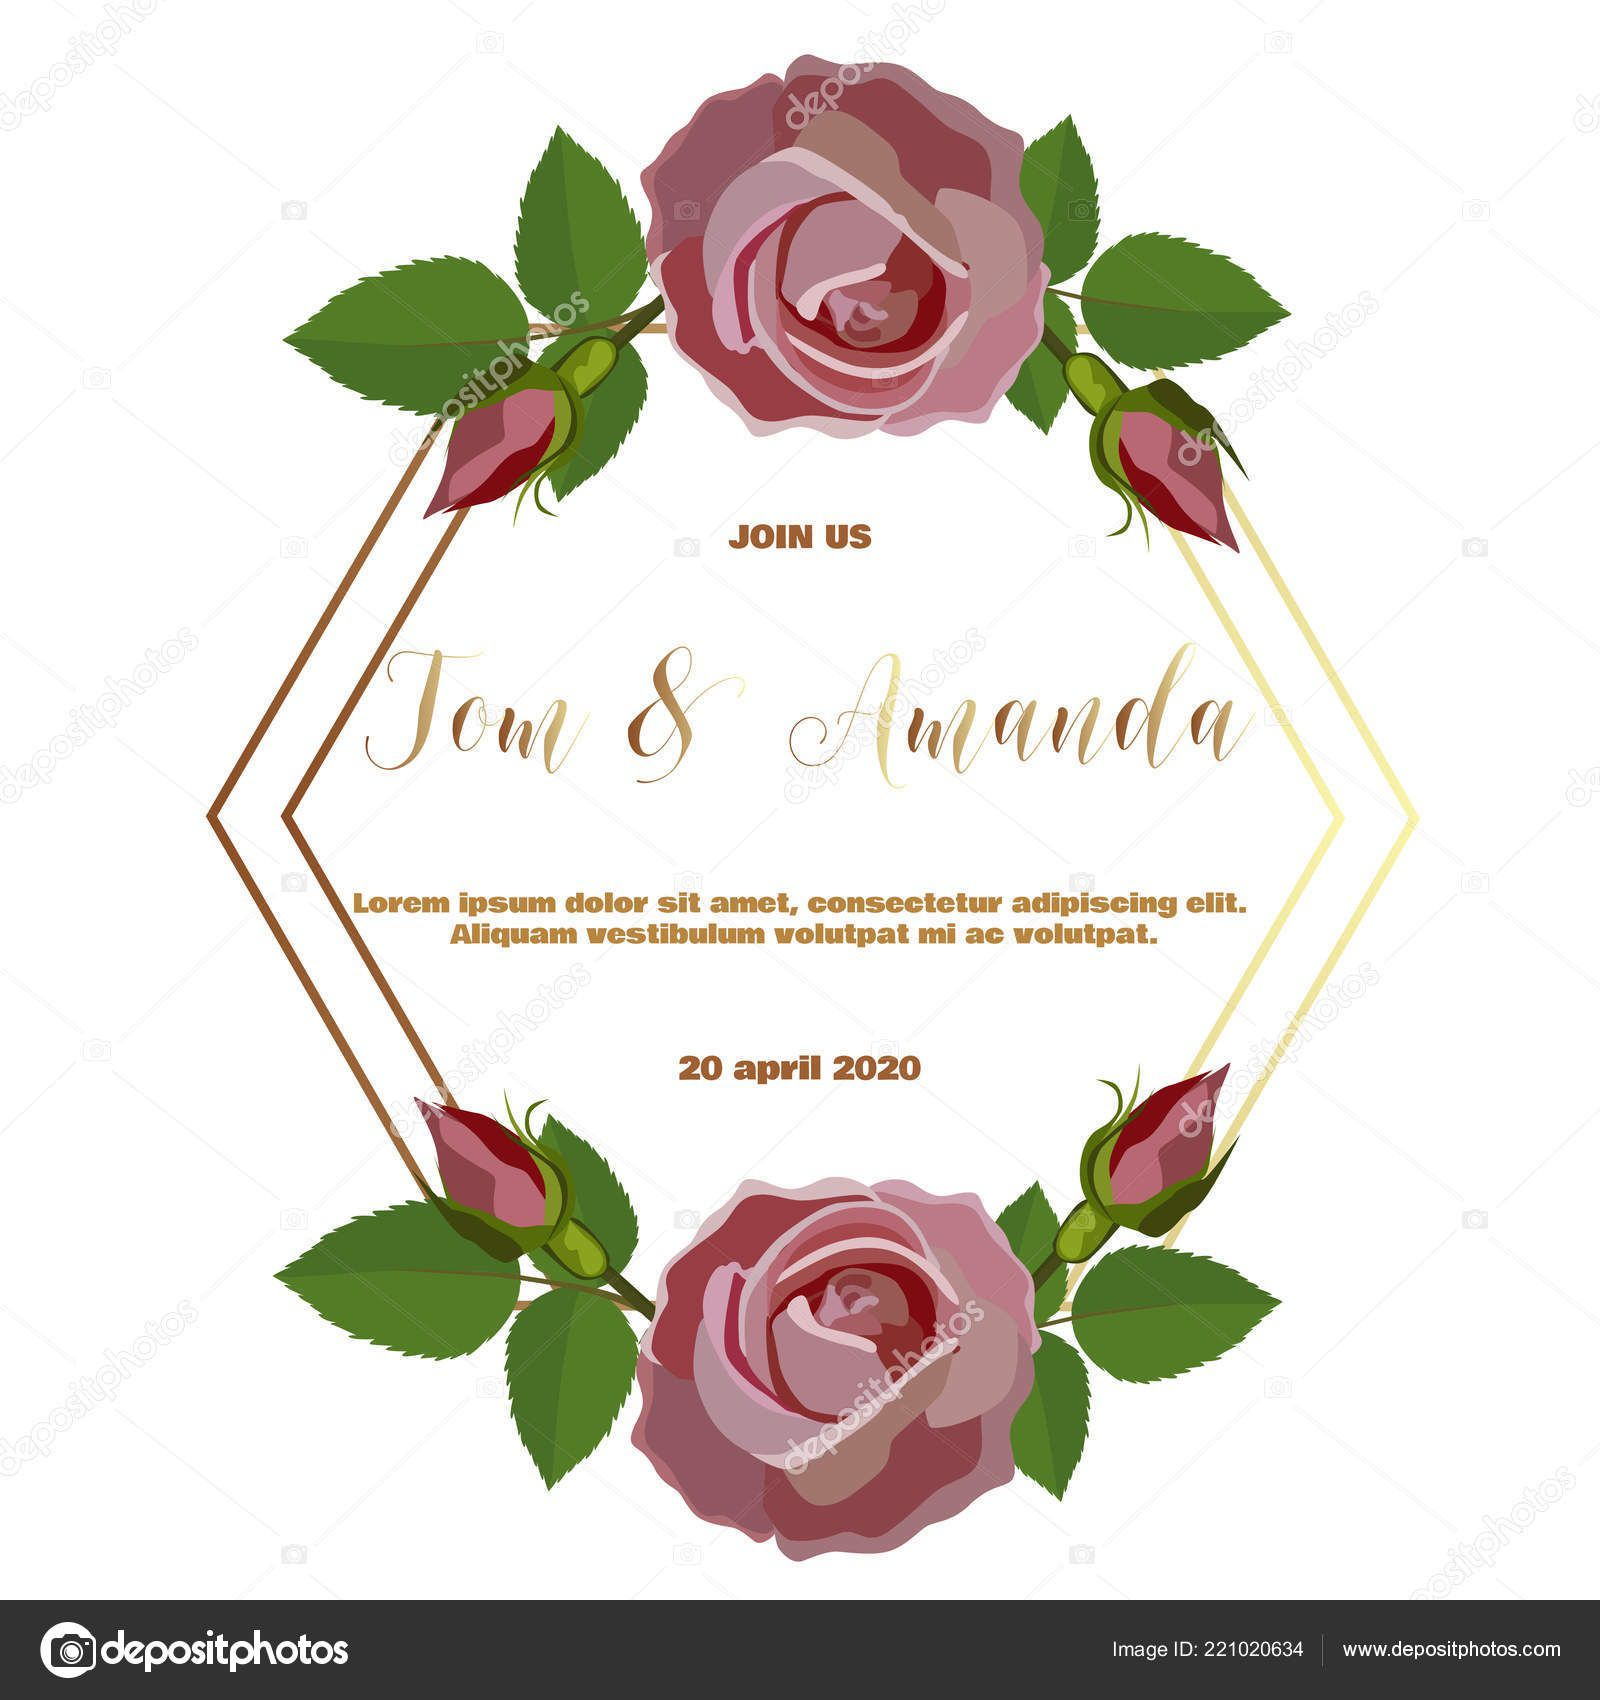 005 Breathtaking Rustic Wedding Invitation Template Highest Clarity  Templates Free For Word Maker PhotoshopFull